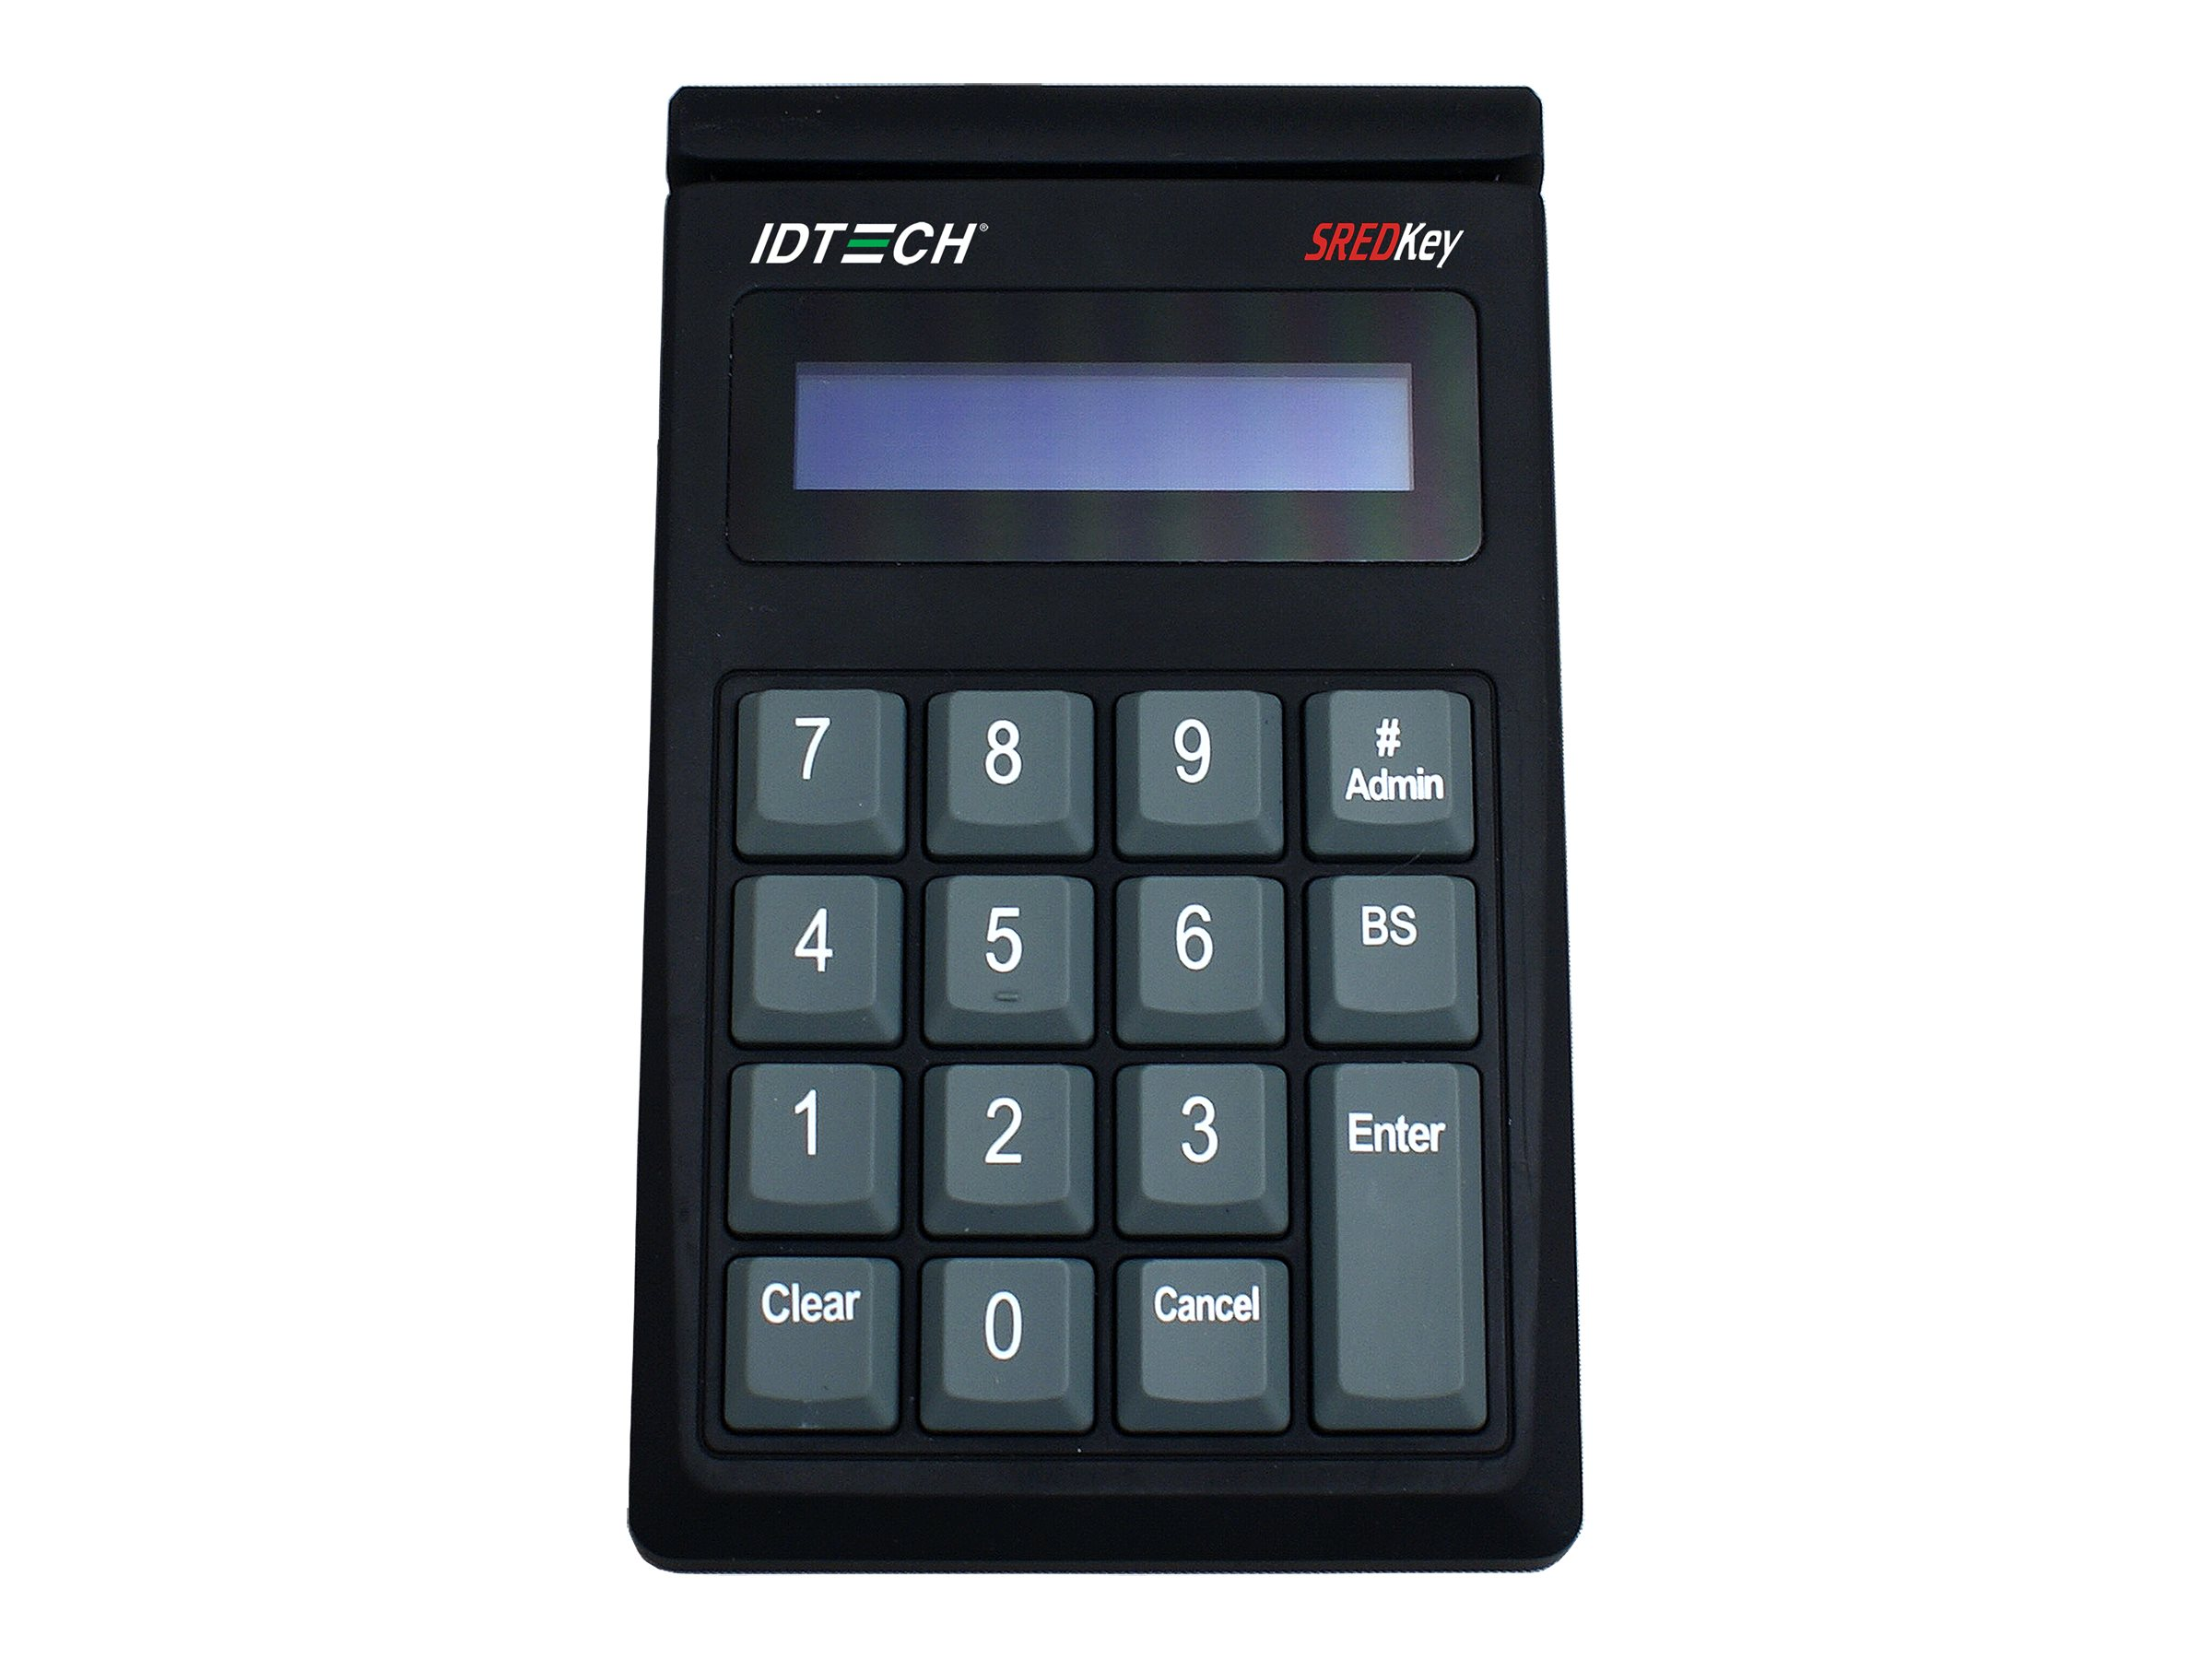 ID Tech SREDKey Keypad w  MSR Track 3, AES Encryption, Enhanced Format, USB Keyboard, Black, IDSK-534833AEB, 19907657, Keyboards & Keypads